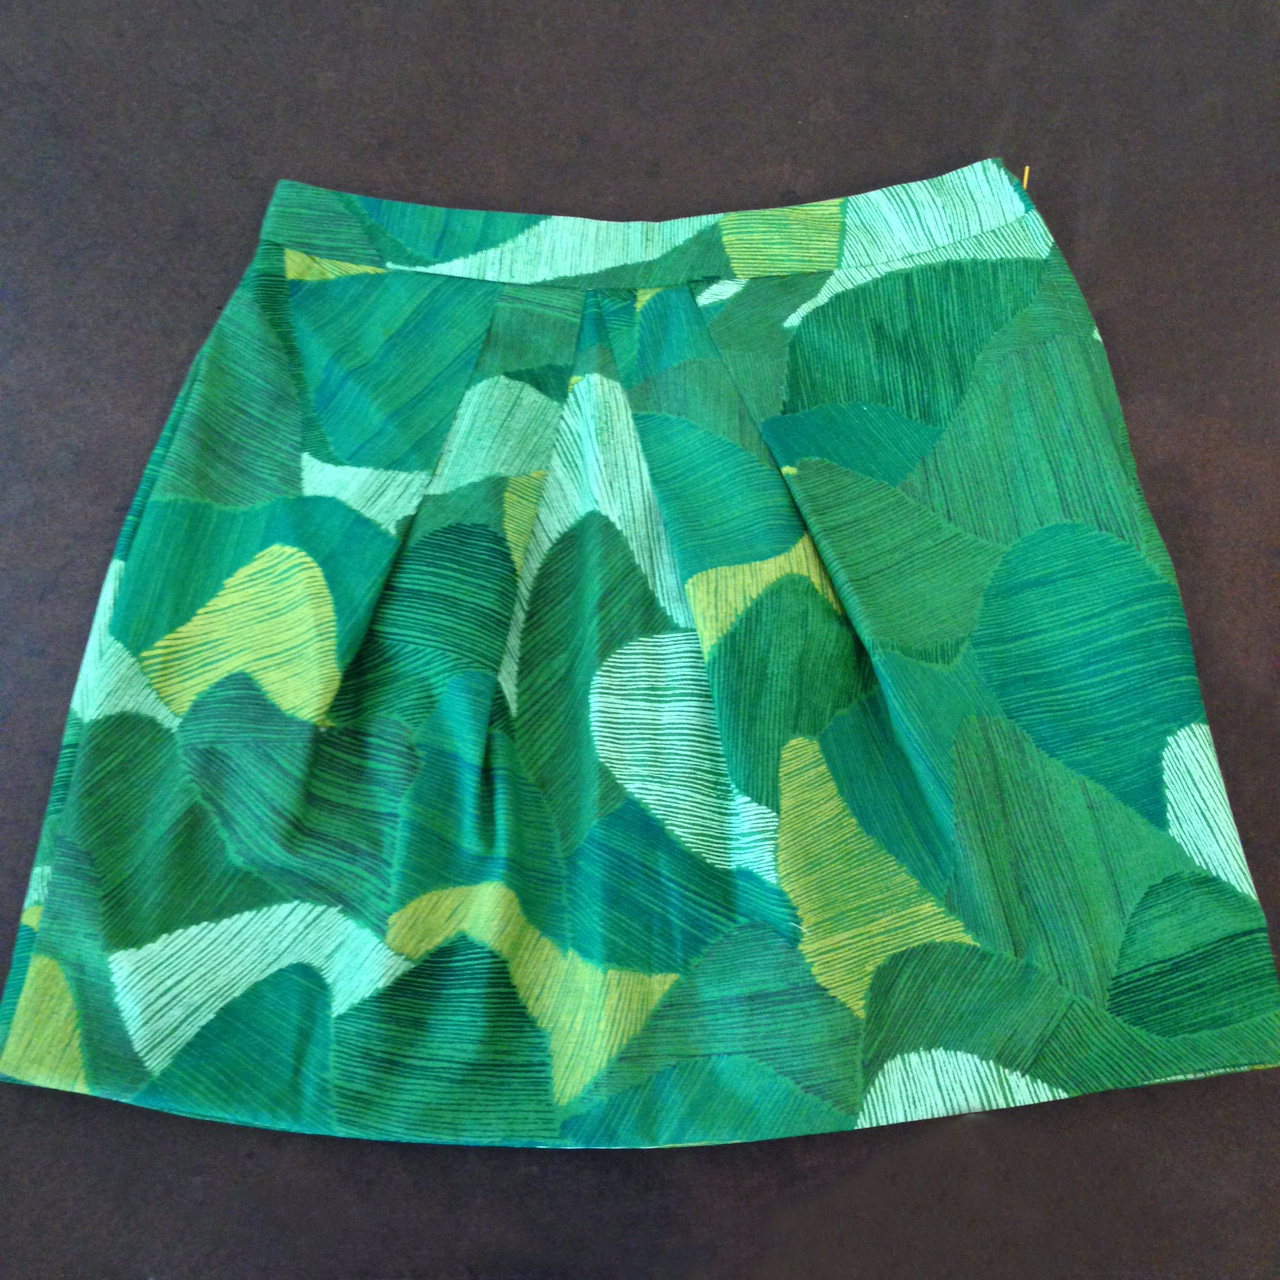 Sew a Skirt Dressmaking Sewing Classes in Sydney